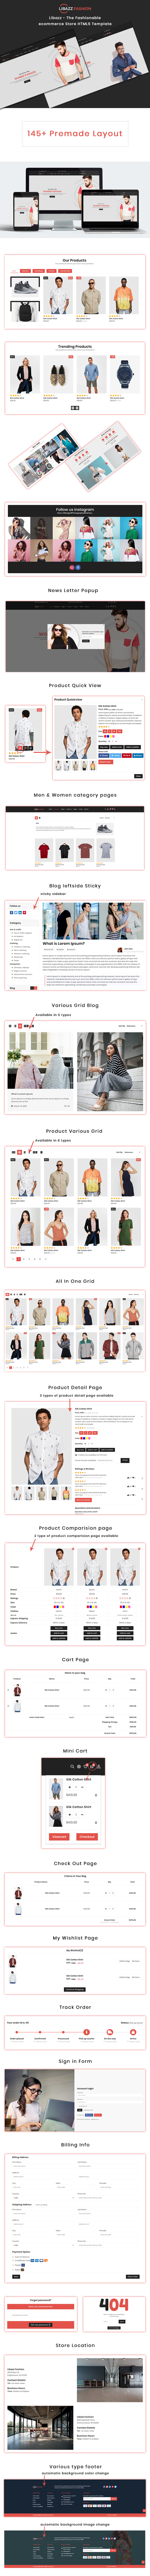 Libazz Fashion - Ecommerce  HTML5 Template - 3